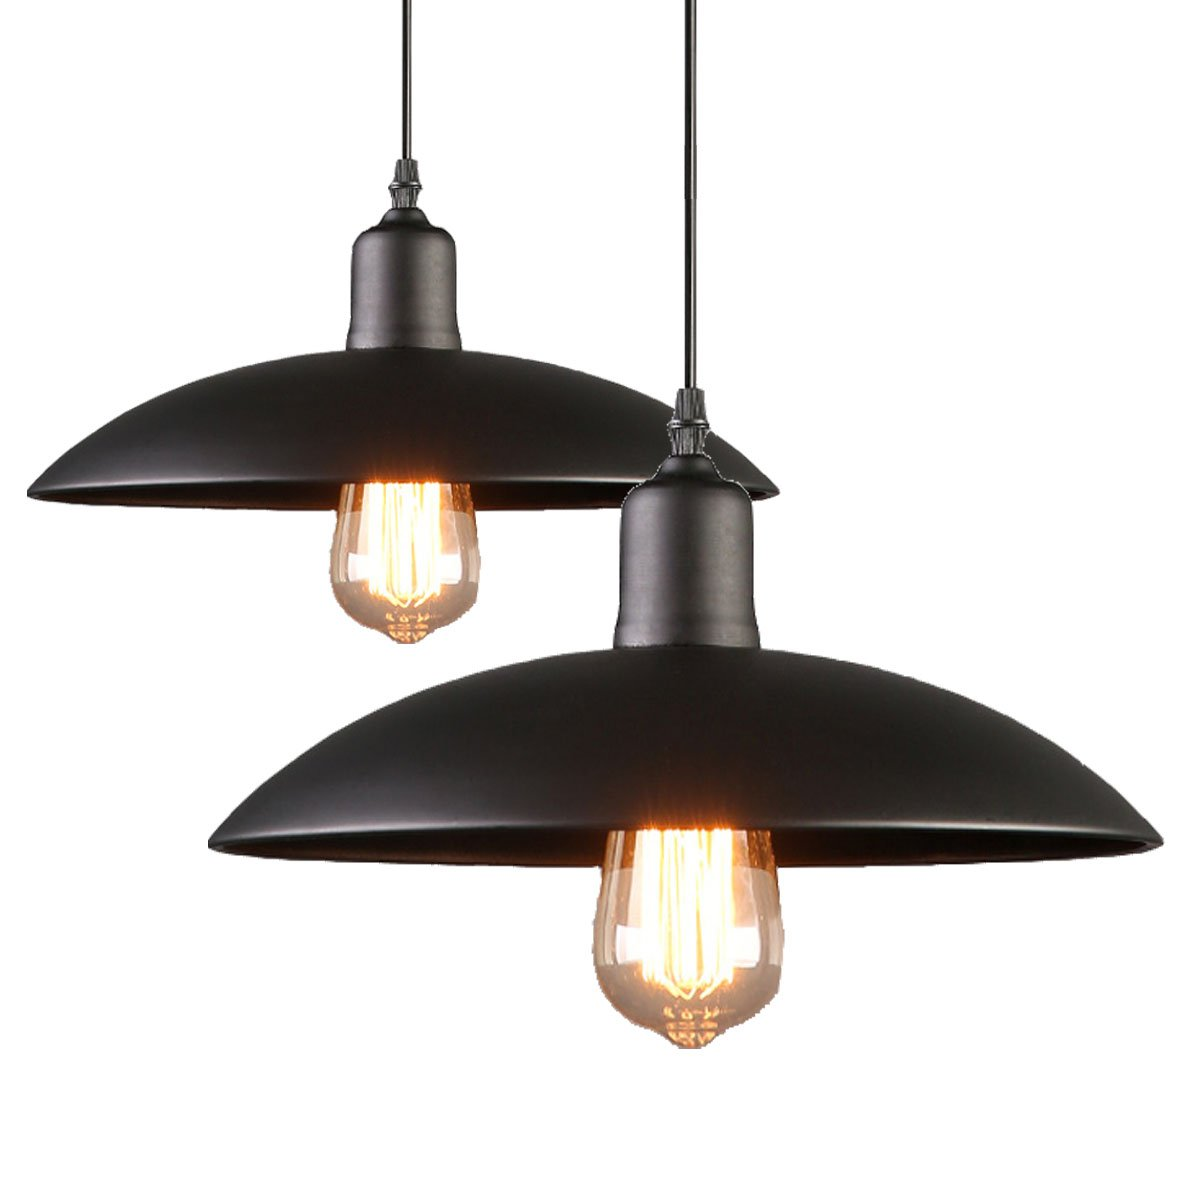 2-Pack Black Iron process Pendant Light Hanging Ceiling Mounted Chandelier Fixture, YIHANG Modern Industrial Edison Vintage Style